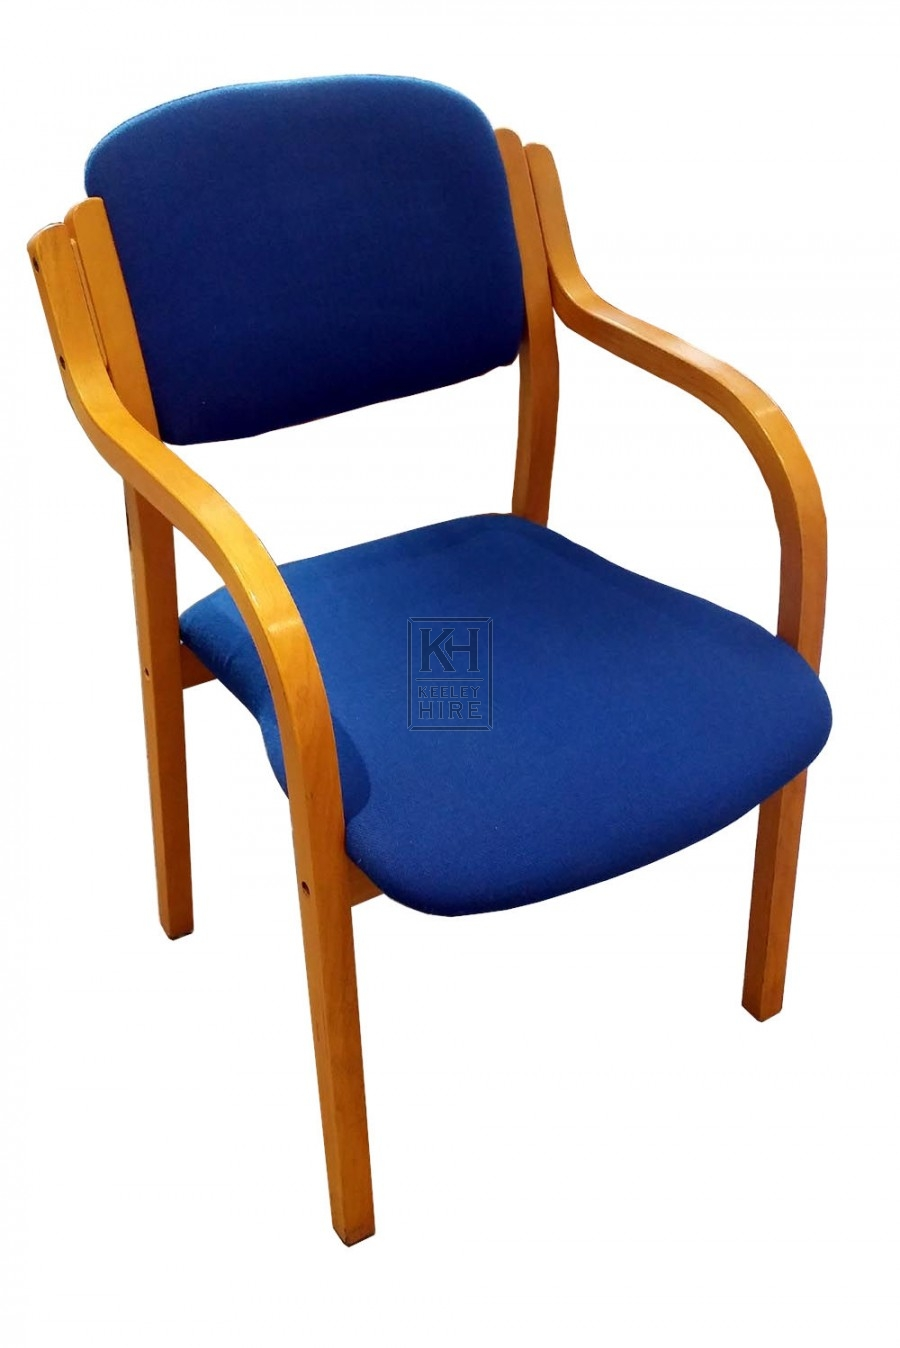 Contemporary office chair - with arms